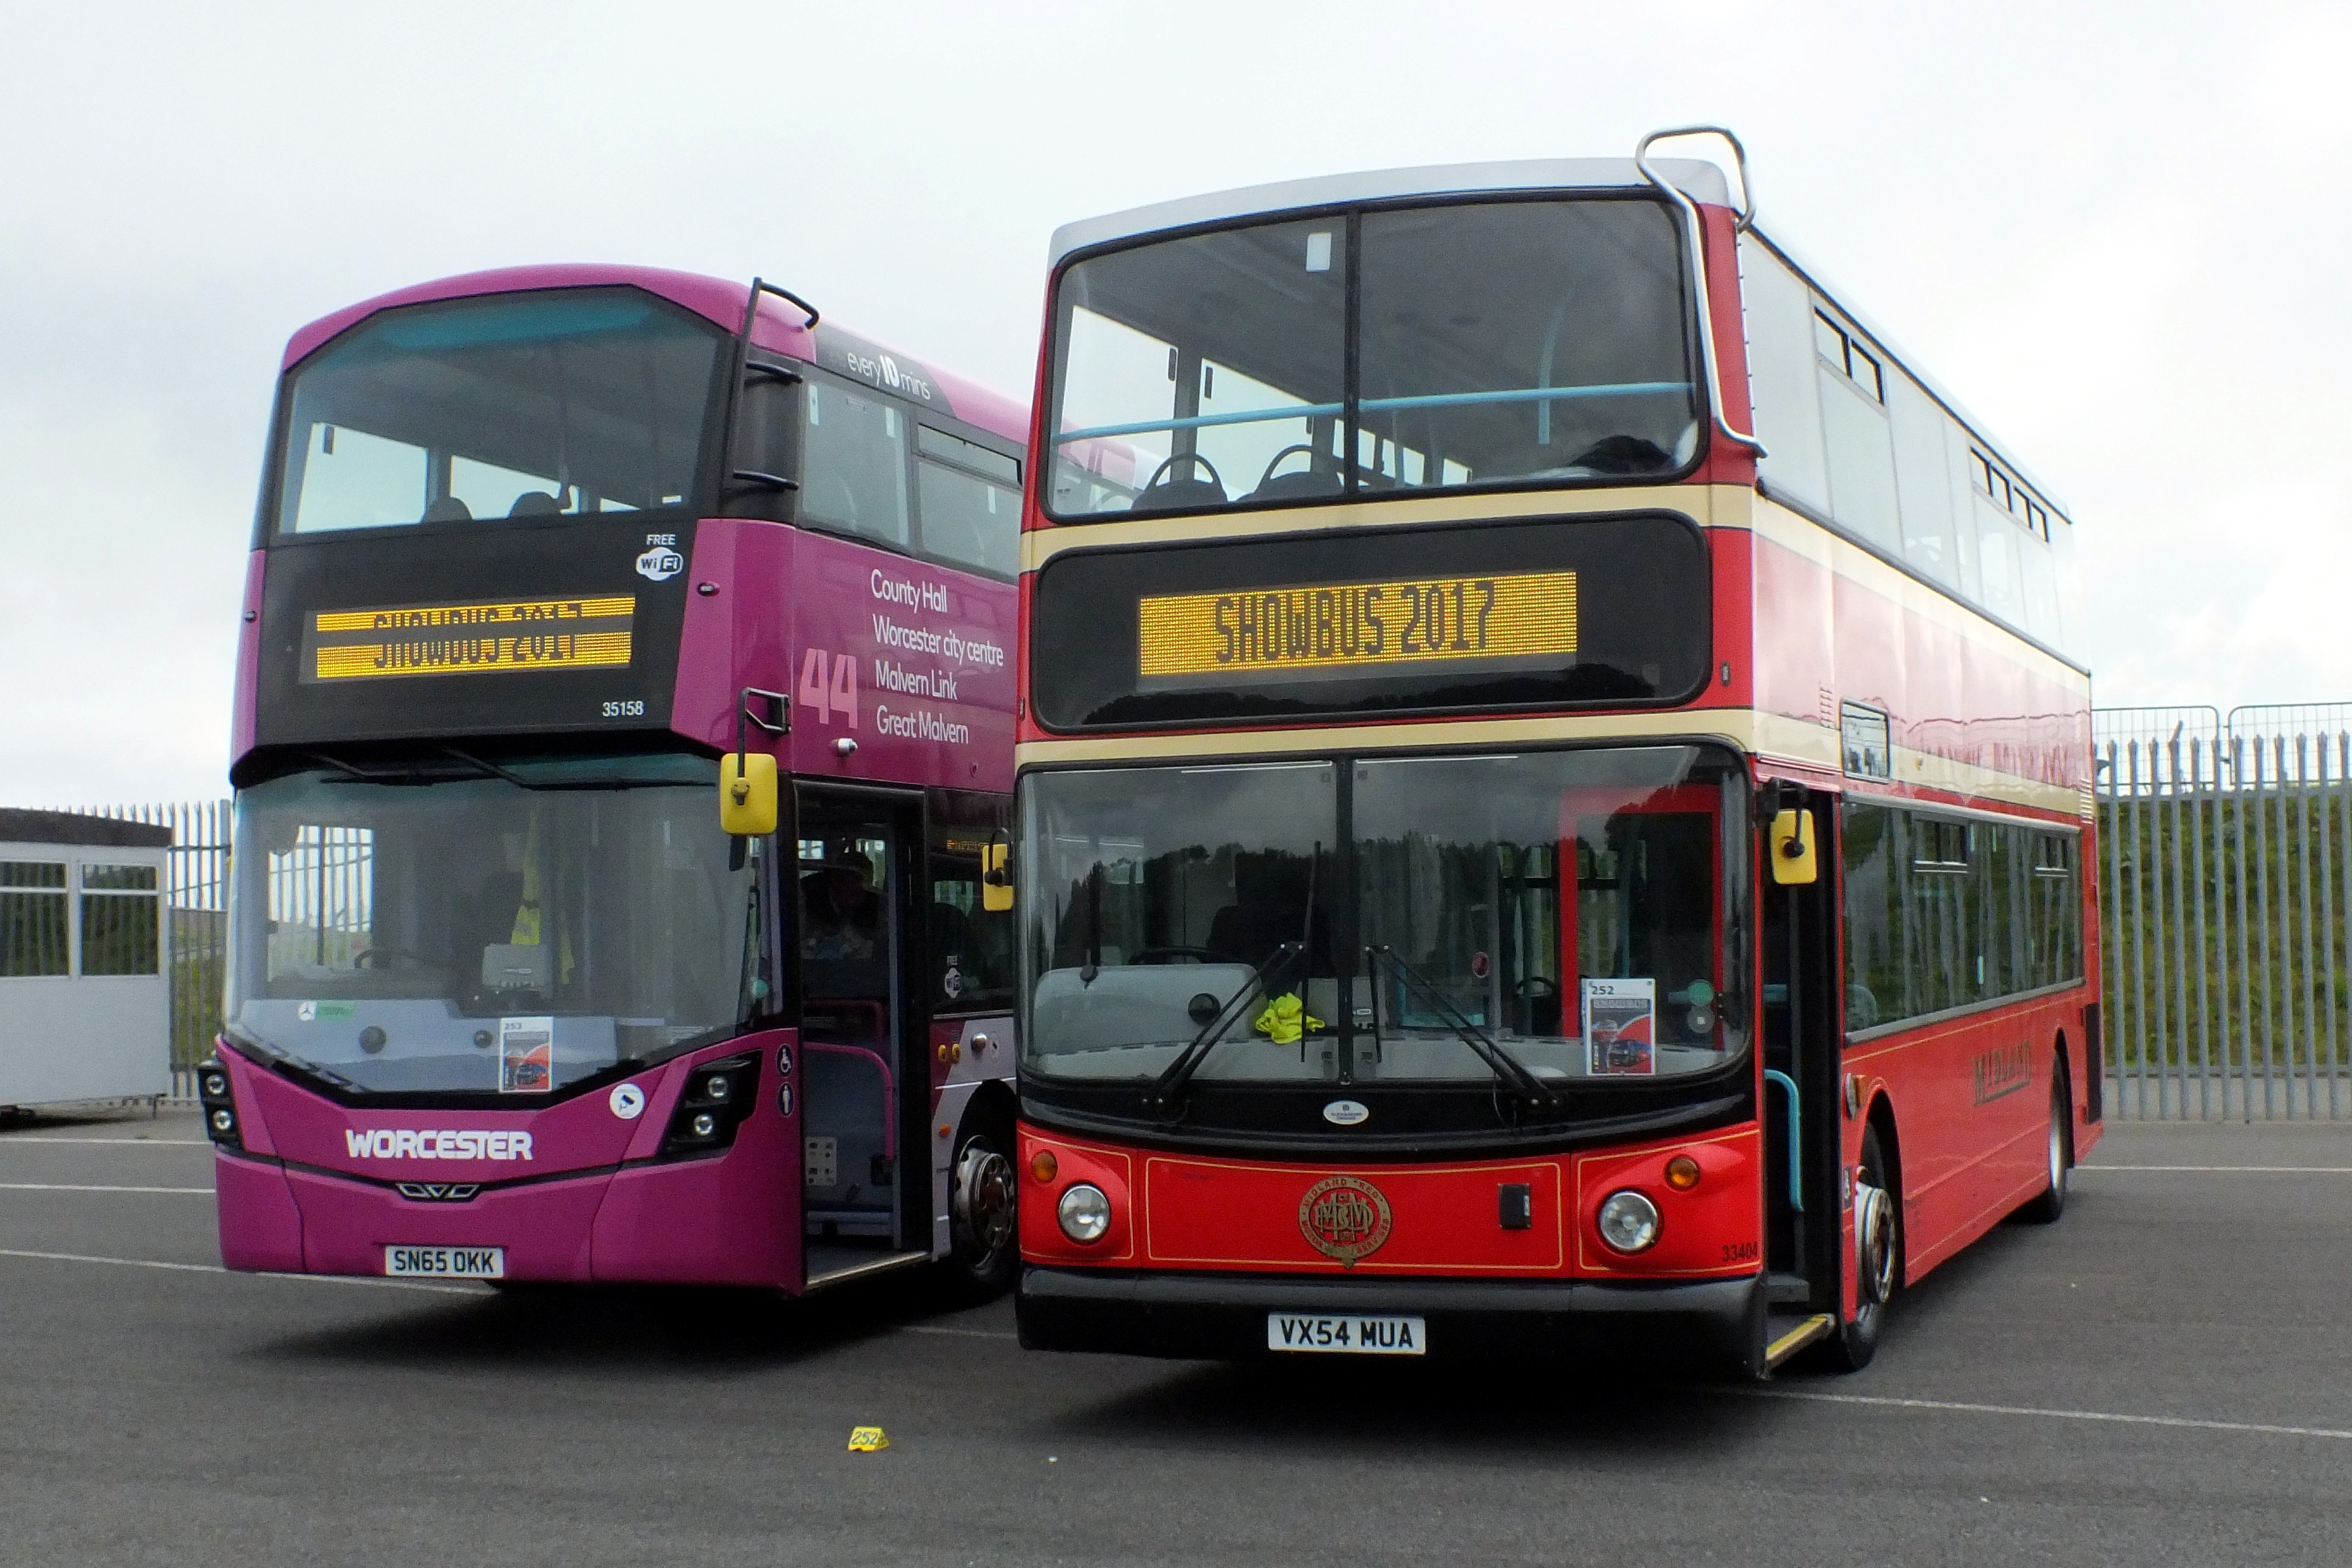 17 September 2017 Showbus, Donington. 307.jpg